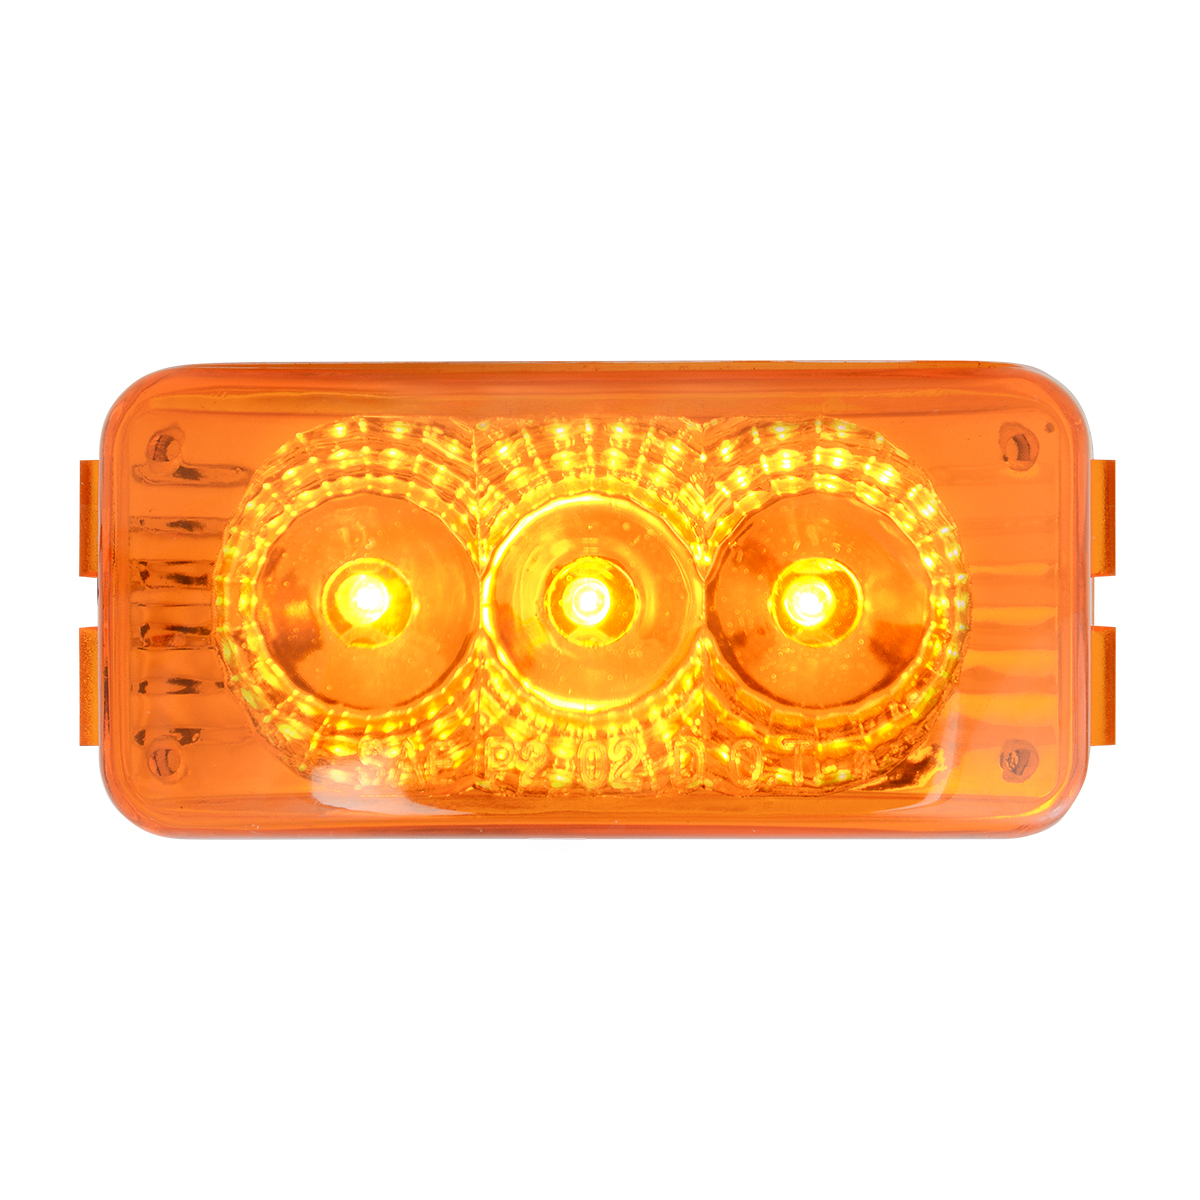 77950 Small Rectangular Spyder LED Marker Light in Amber/Amber